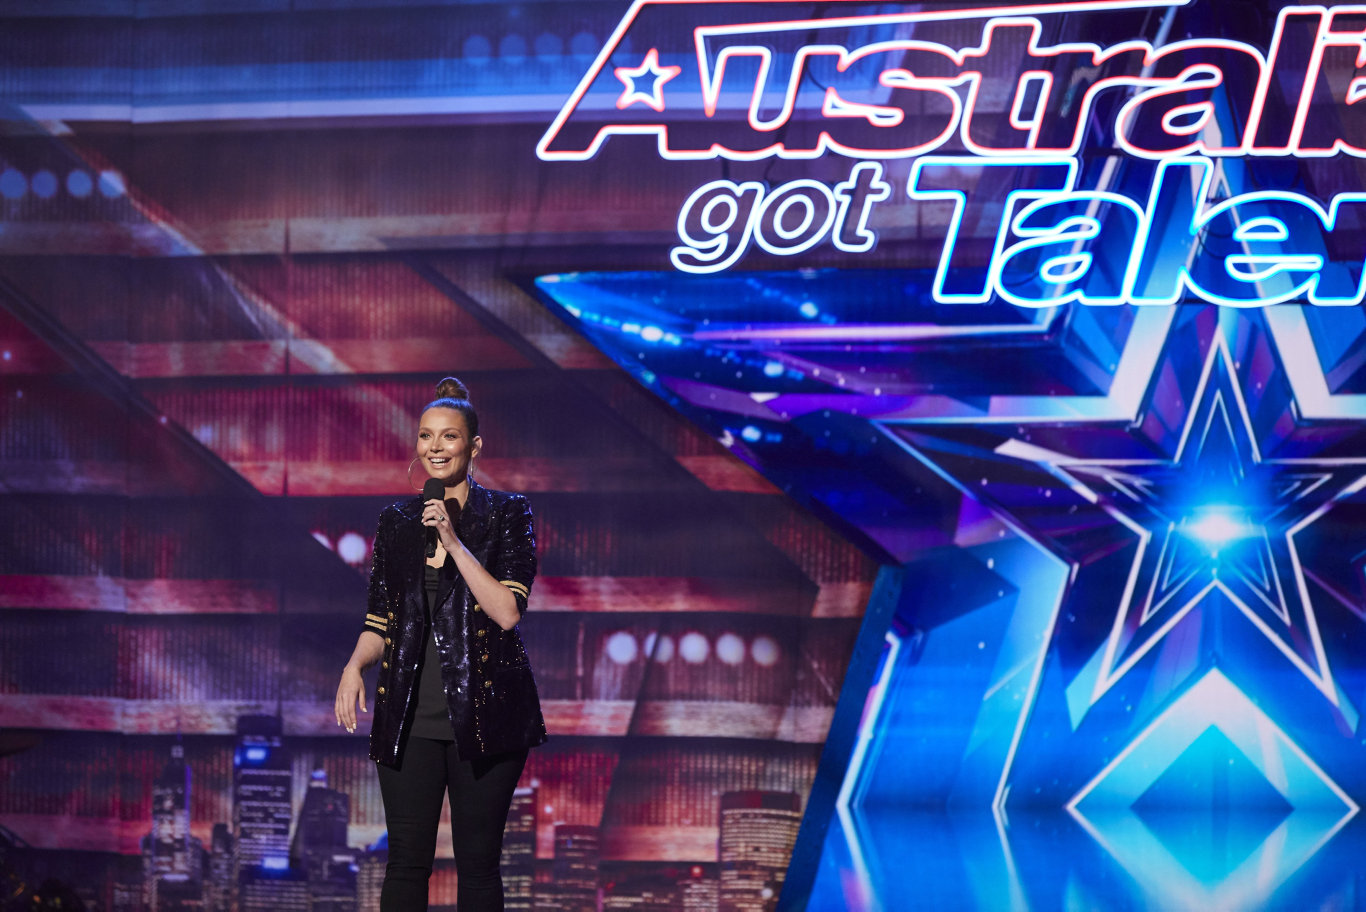 Ricki-Lee Coulter on the set of Australia's Got Talent.